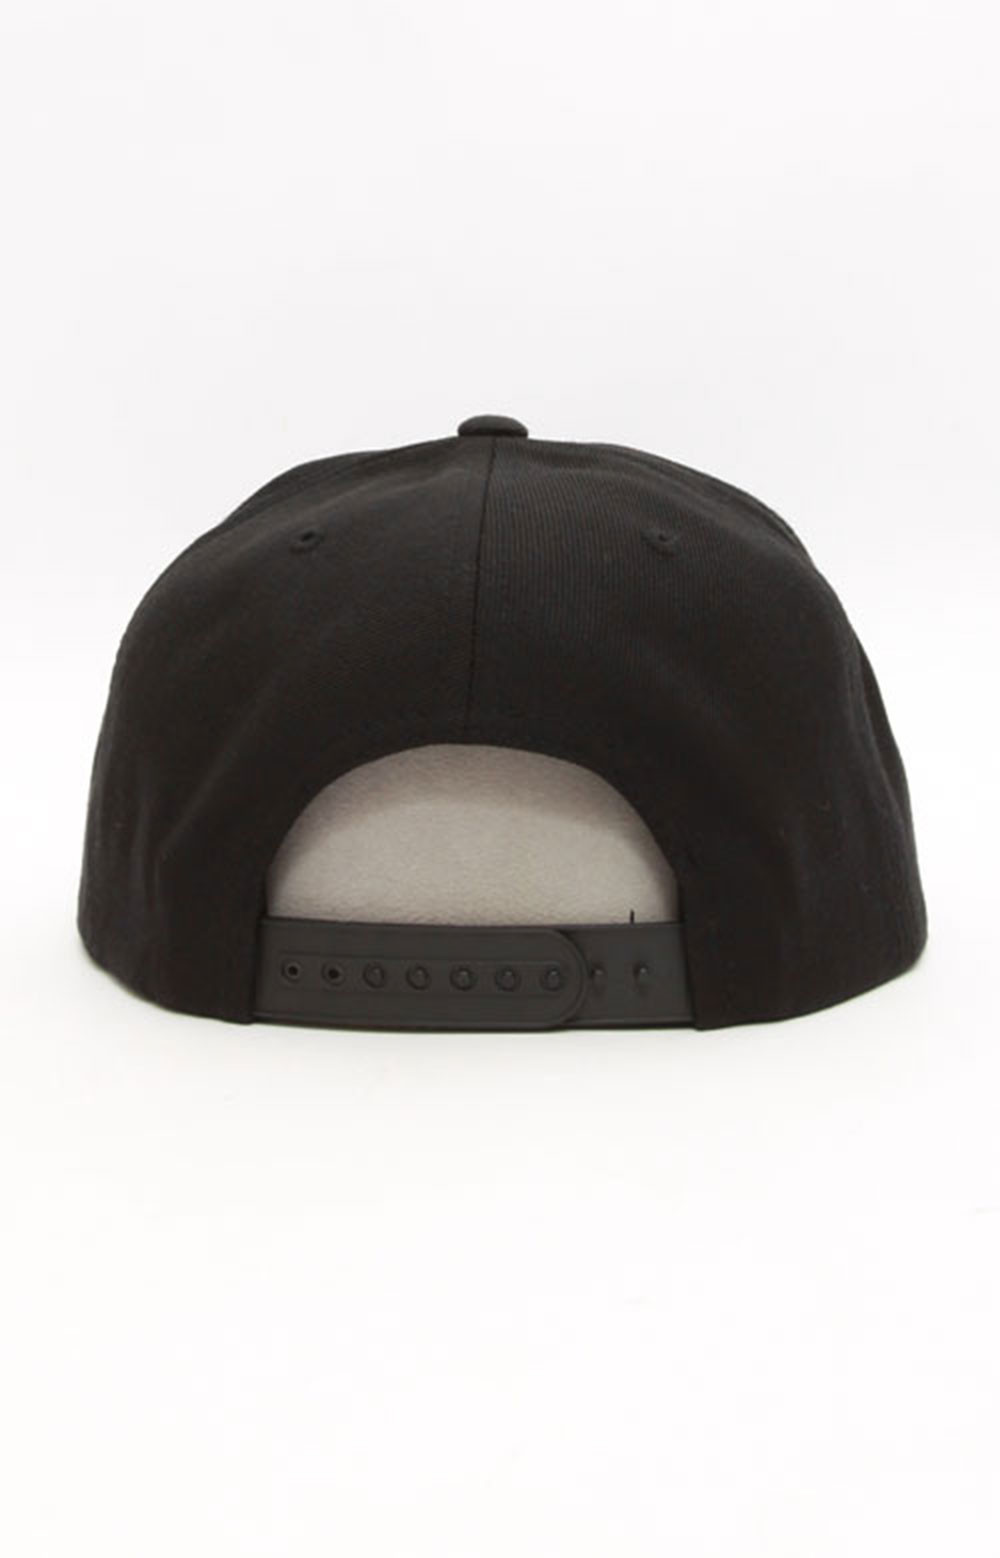 Oath III Snap-Back Hat - Black 2